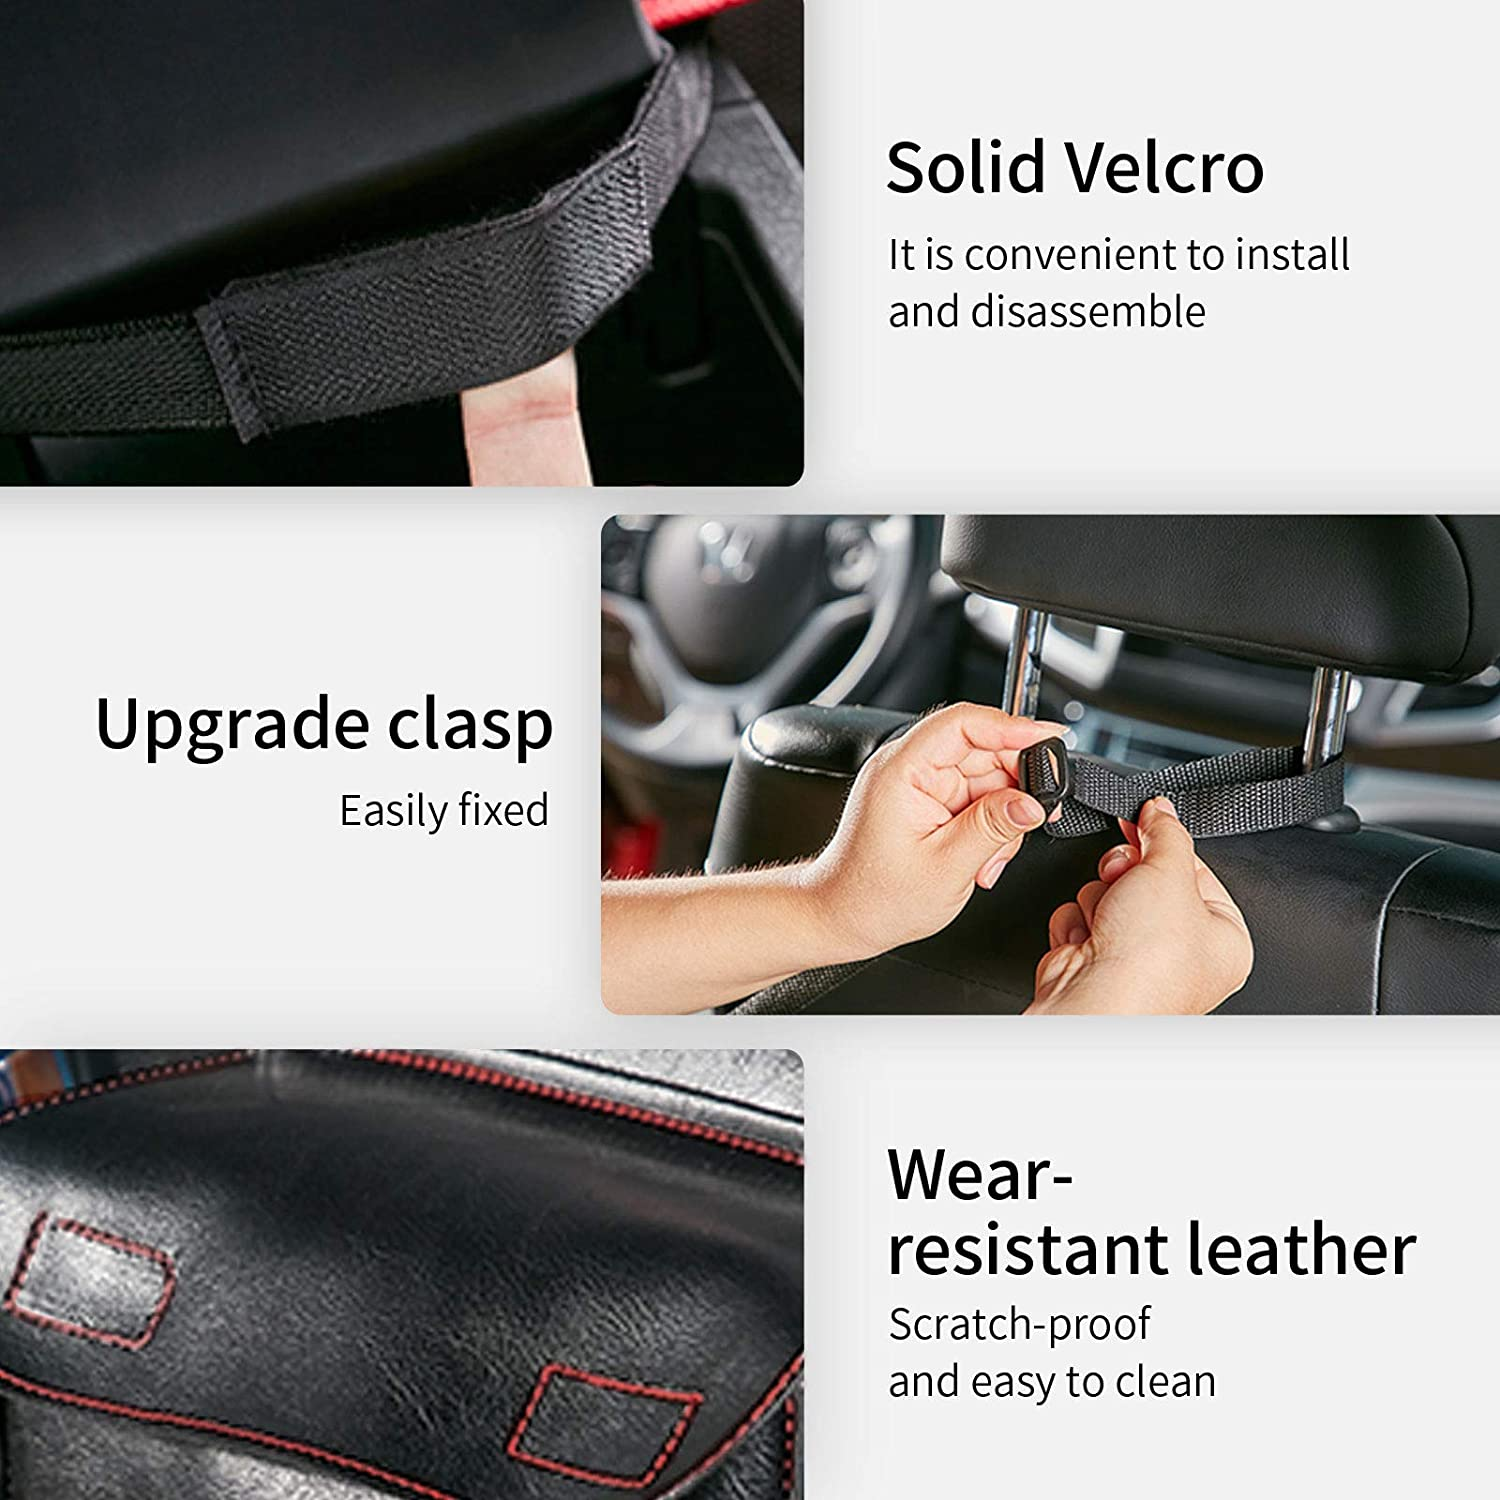 Car Hooks for Purses and Bags Front Seat,Black. morefulls Upgraded Cortical Car Net Pocket Handbag Holder,Leather Car Mesh Organizer,Upscale Storage Netting Pouch for Driver